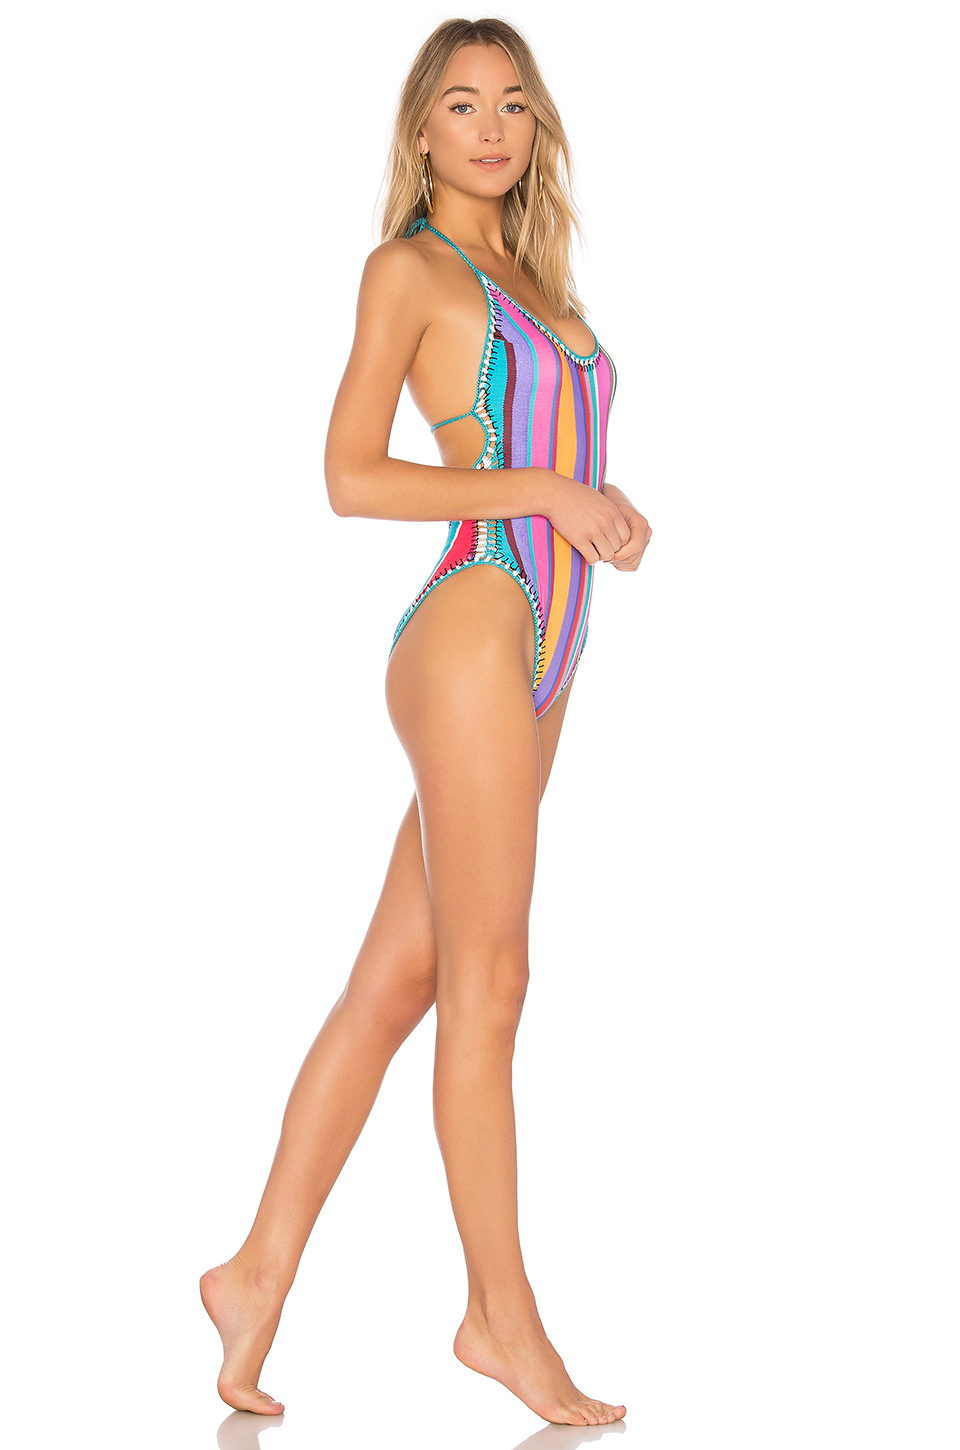 Nanette Lepore Goddess One Piece in Multi